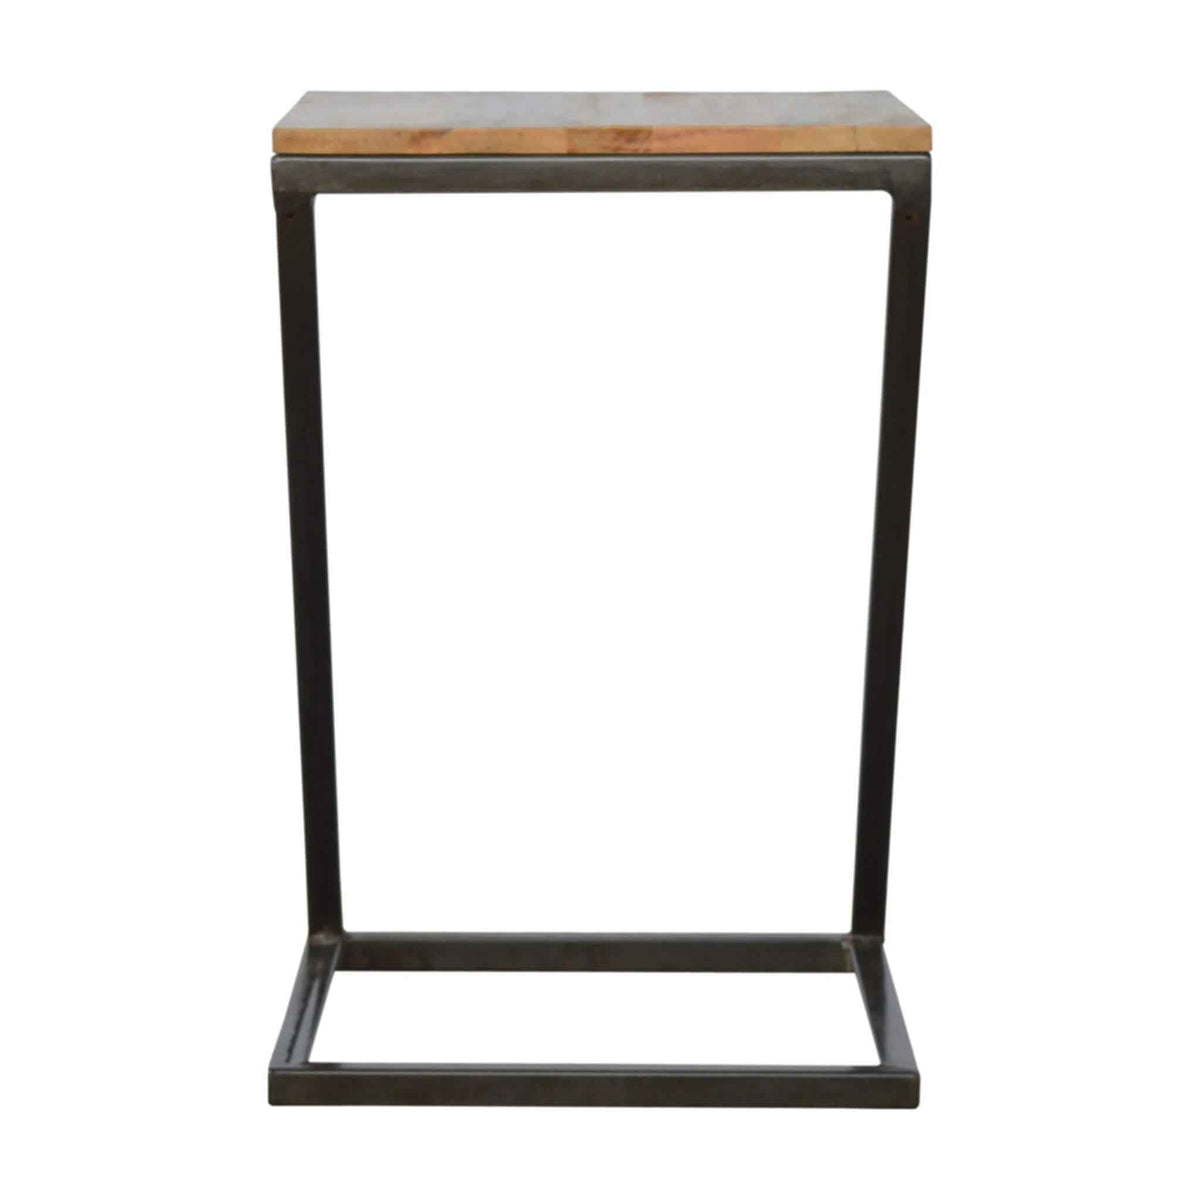 End view of The Artisan Industrial Z shaped Side Table